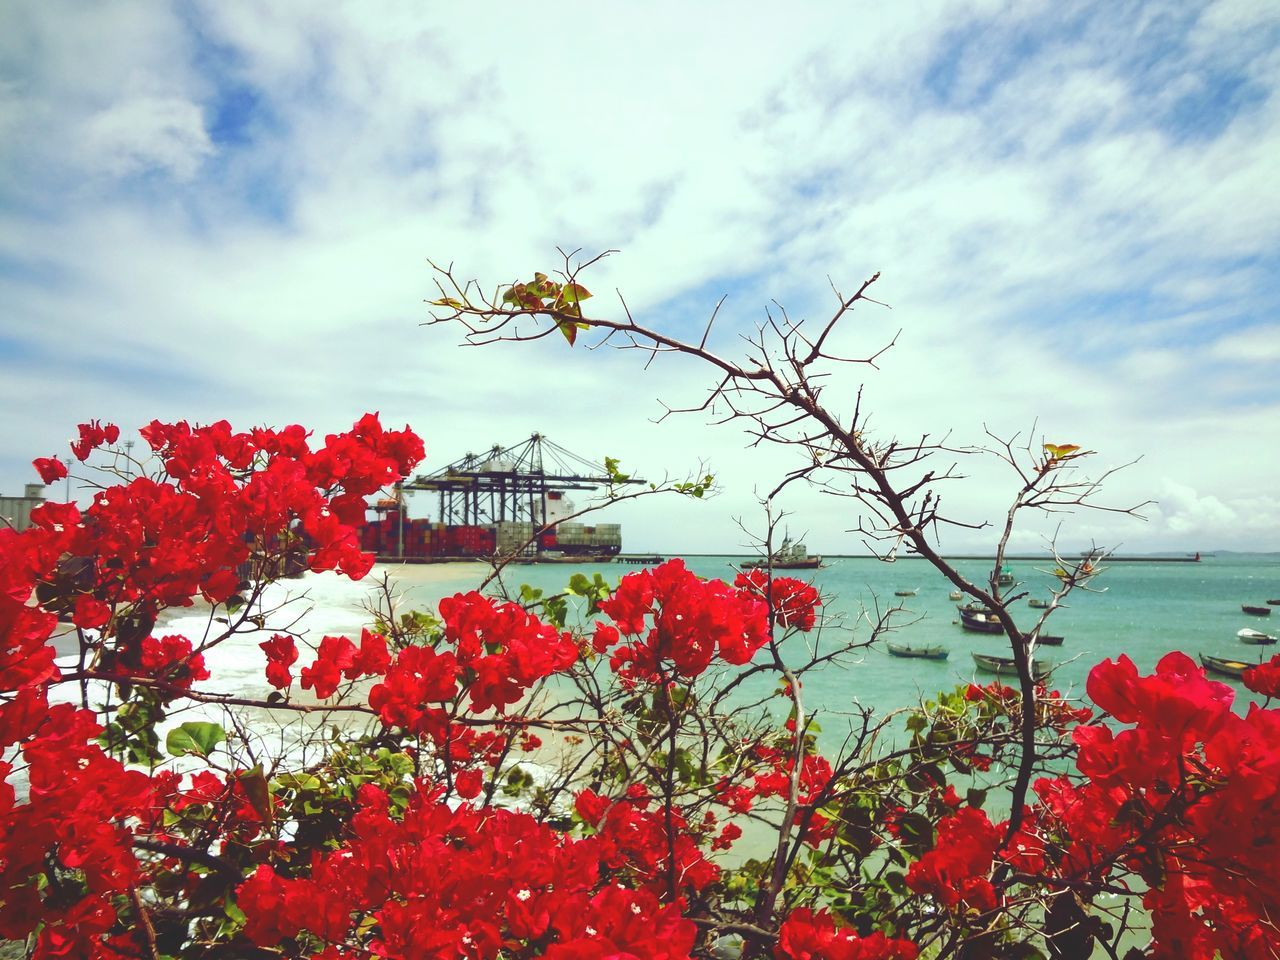 Bahia Brasil Sky And Clouds View From The Window... Magic Color Flowers Magic Moments Nature_collection Aroundtheworld Life In Colors Amazing View Endlesssummer Beachphotography Waves, Ocean, Nature Capture The Moment Blessed  Beautiful Bahiadetodosossantos